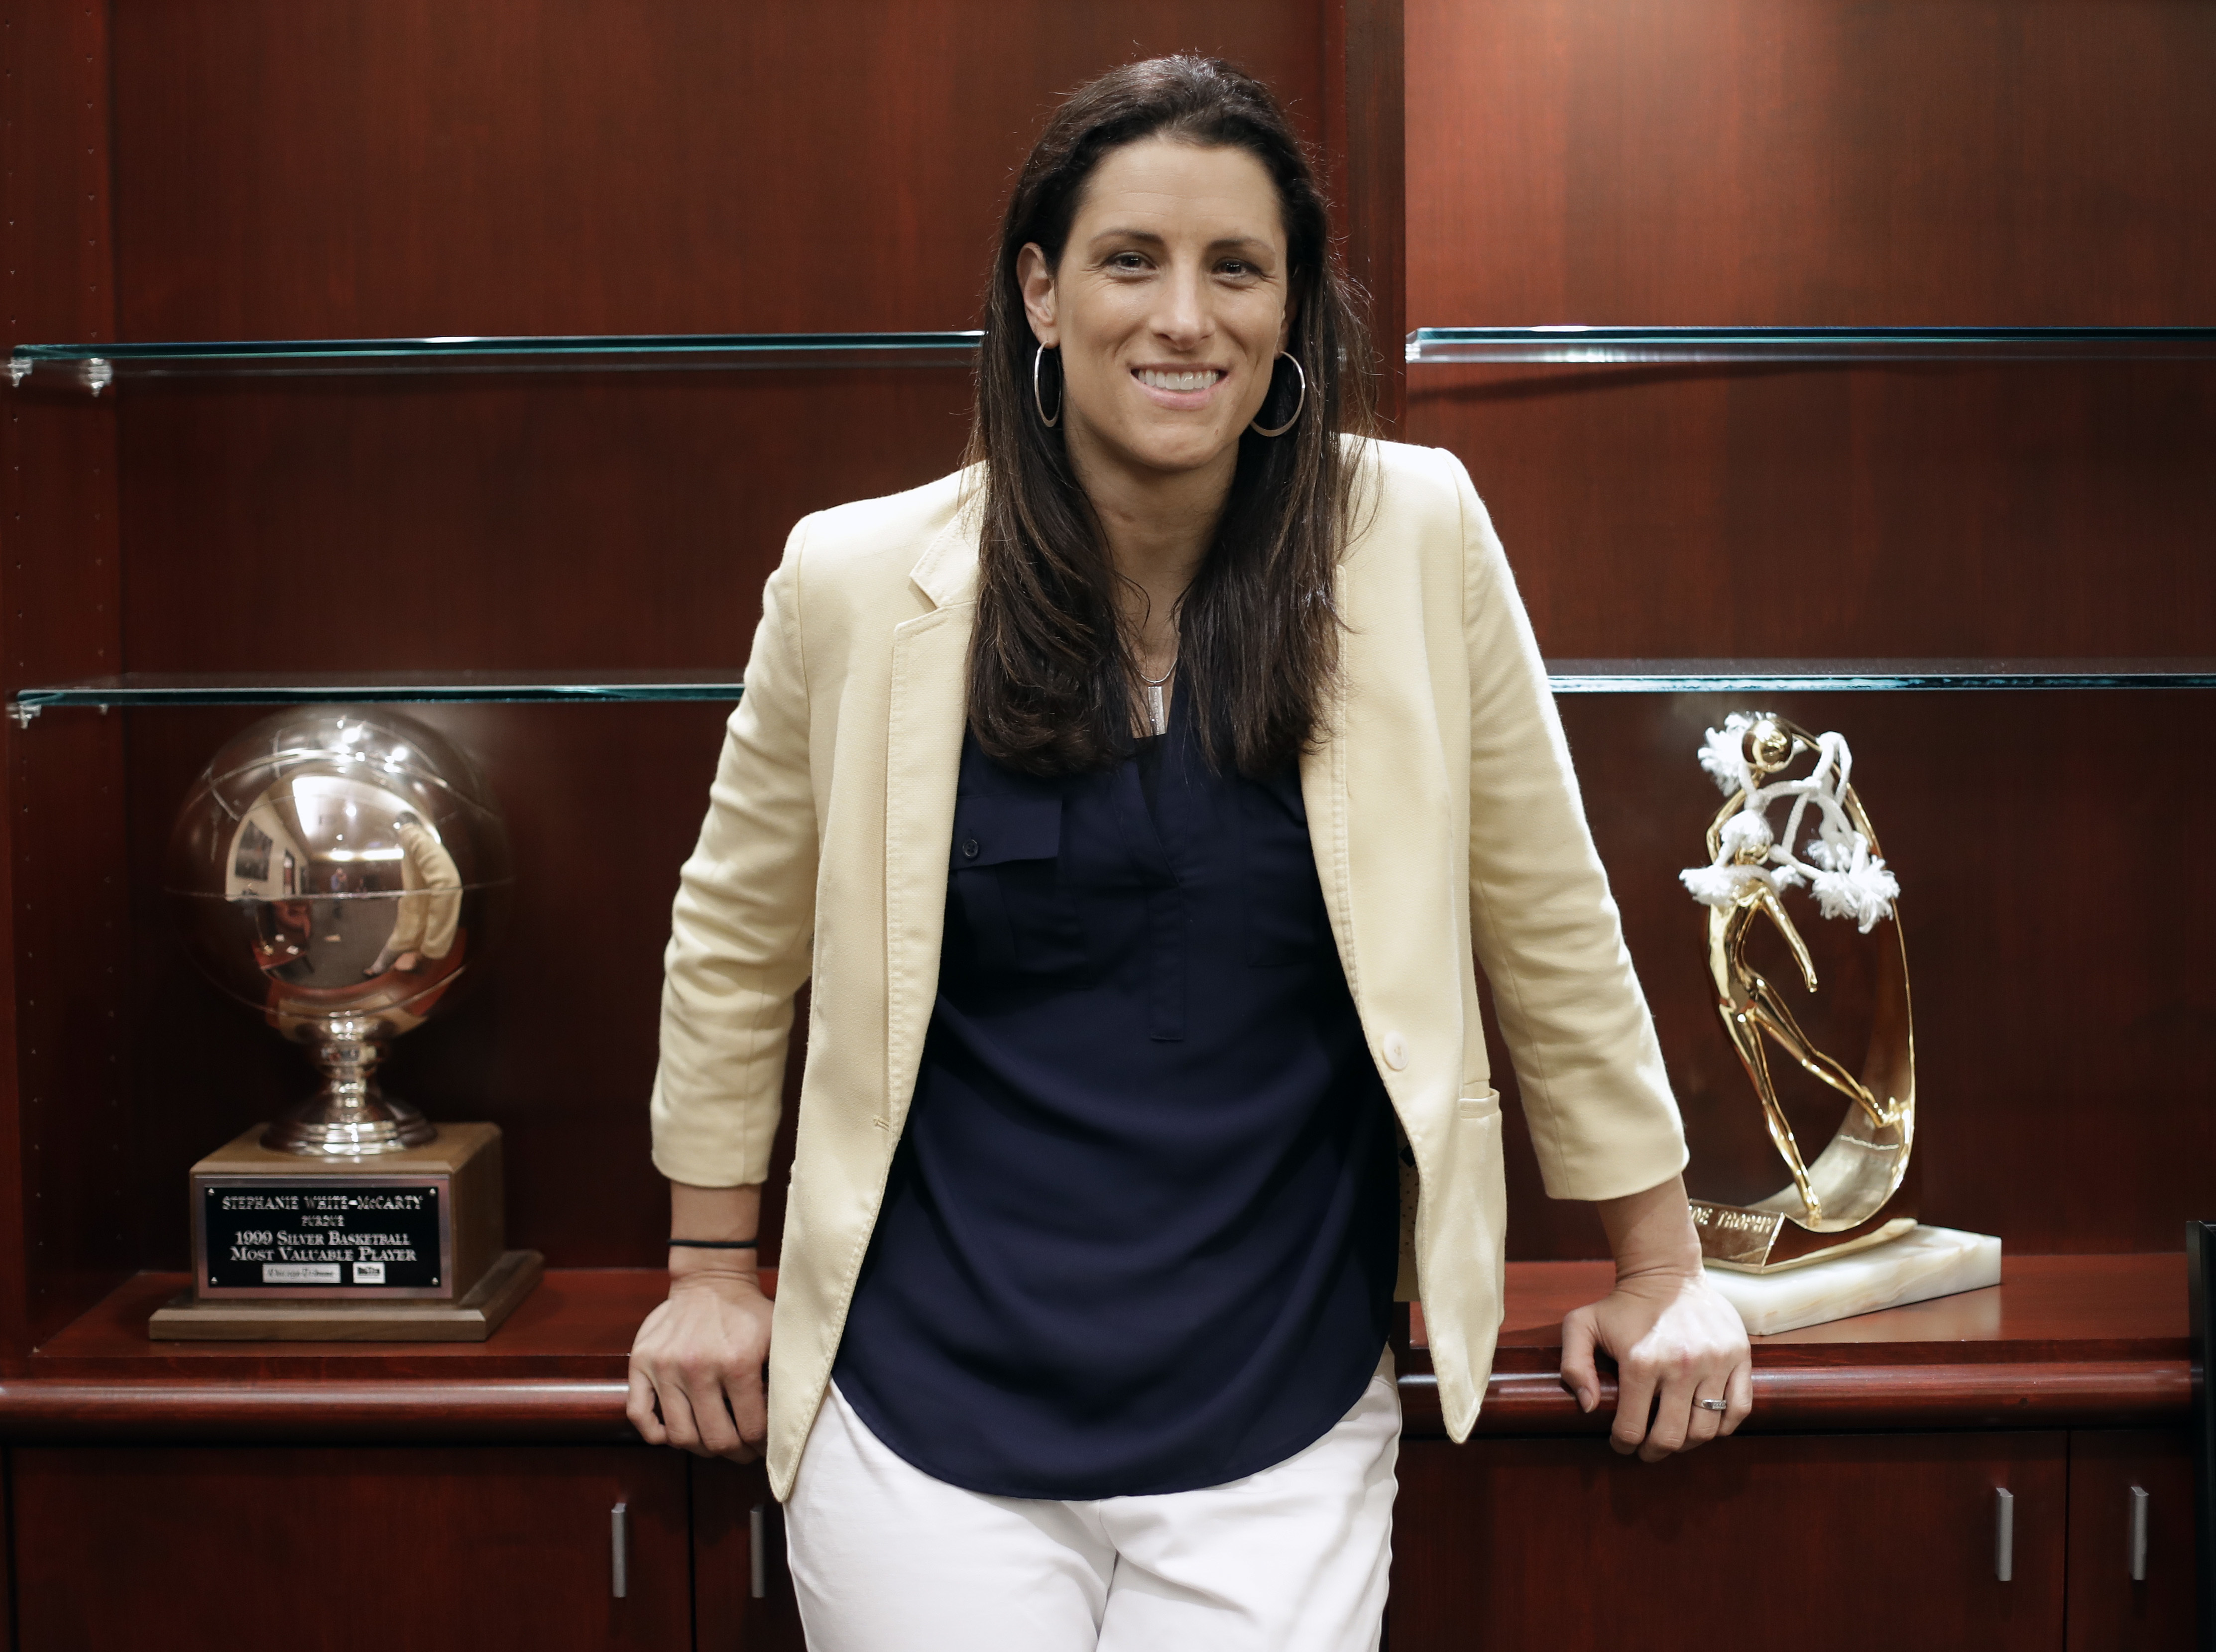 Stephanie White, who is finishing her season as the head coach of the WNBA's Indiana Fever and preparing as head coach of the Vanderbilt women's basketball team, poses with the few pieces of memorabilia she's had time to move into her Vanderbilt office Fr